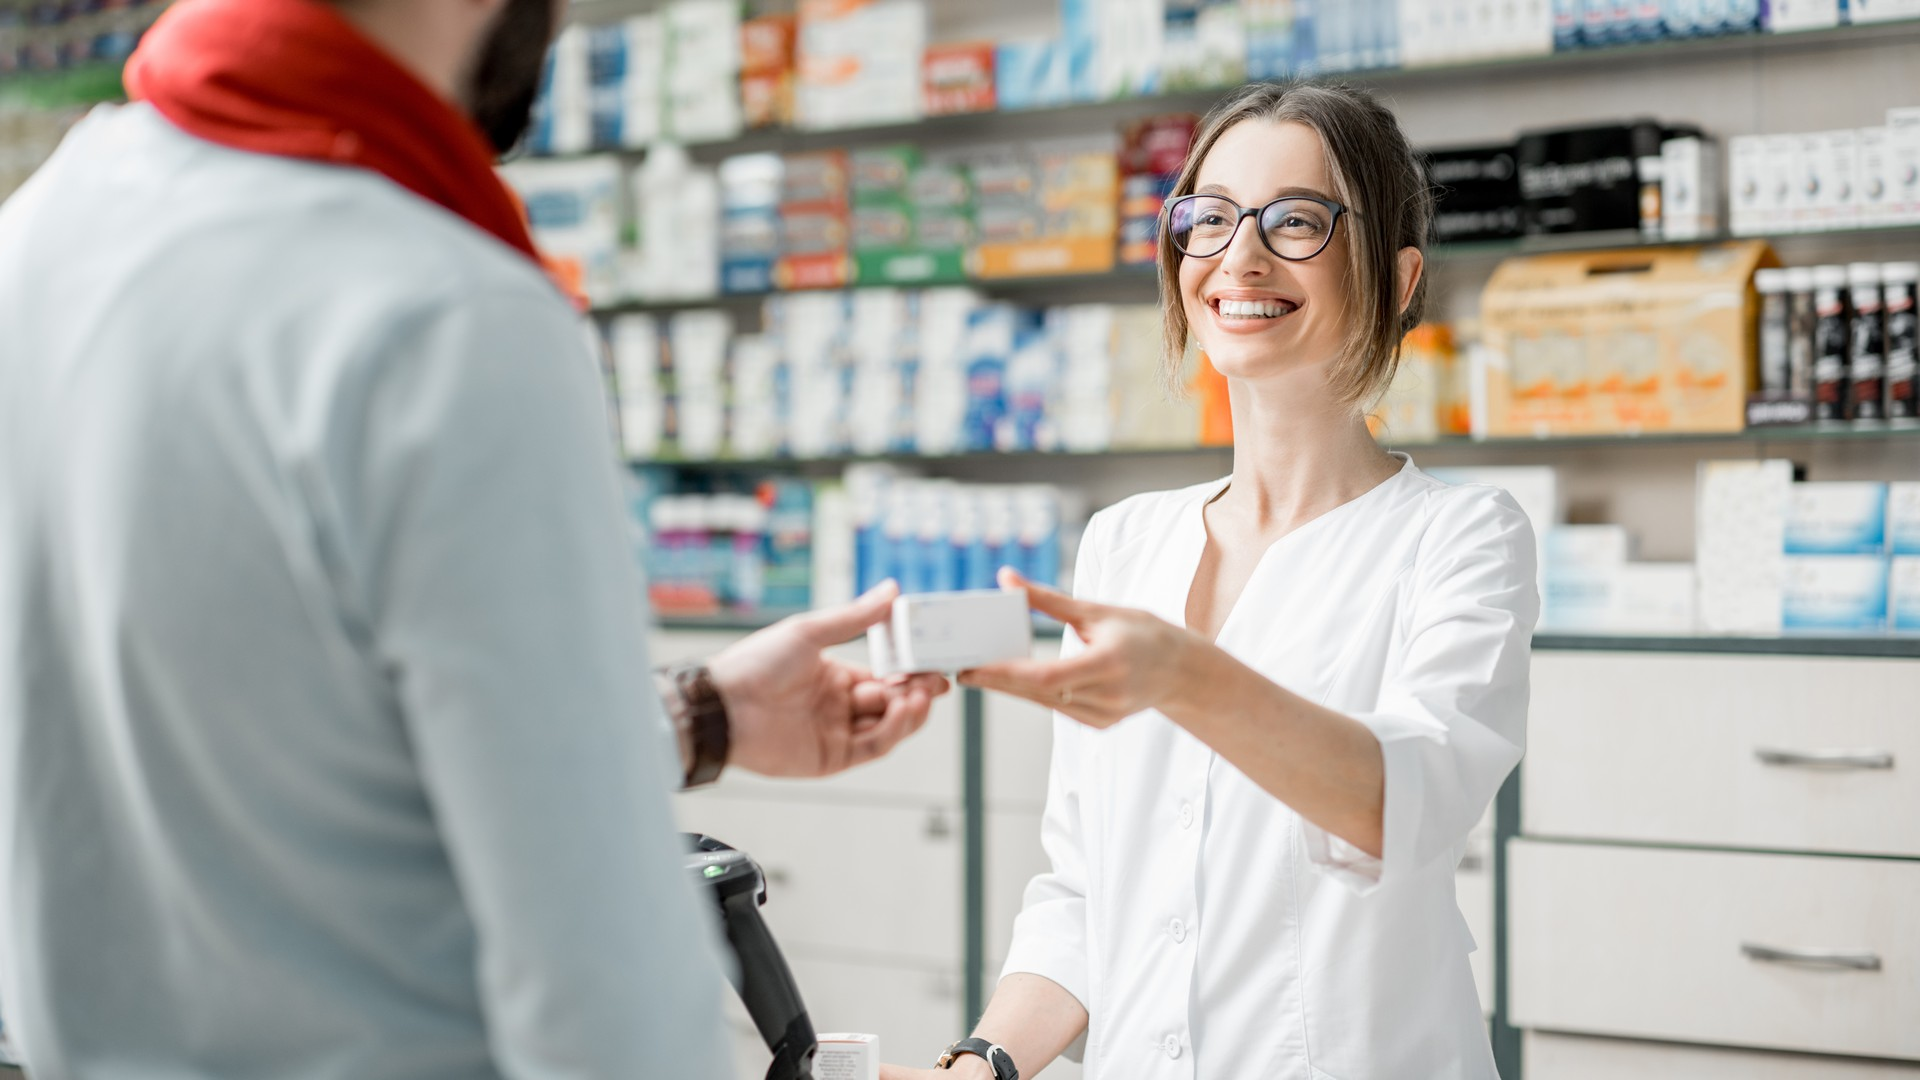 Pharmacies cash handling